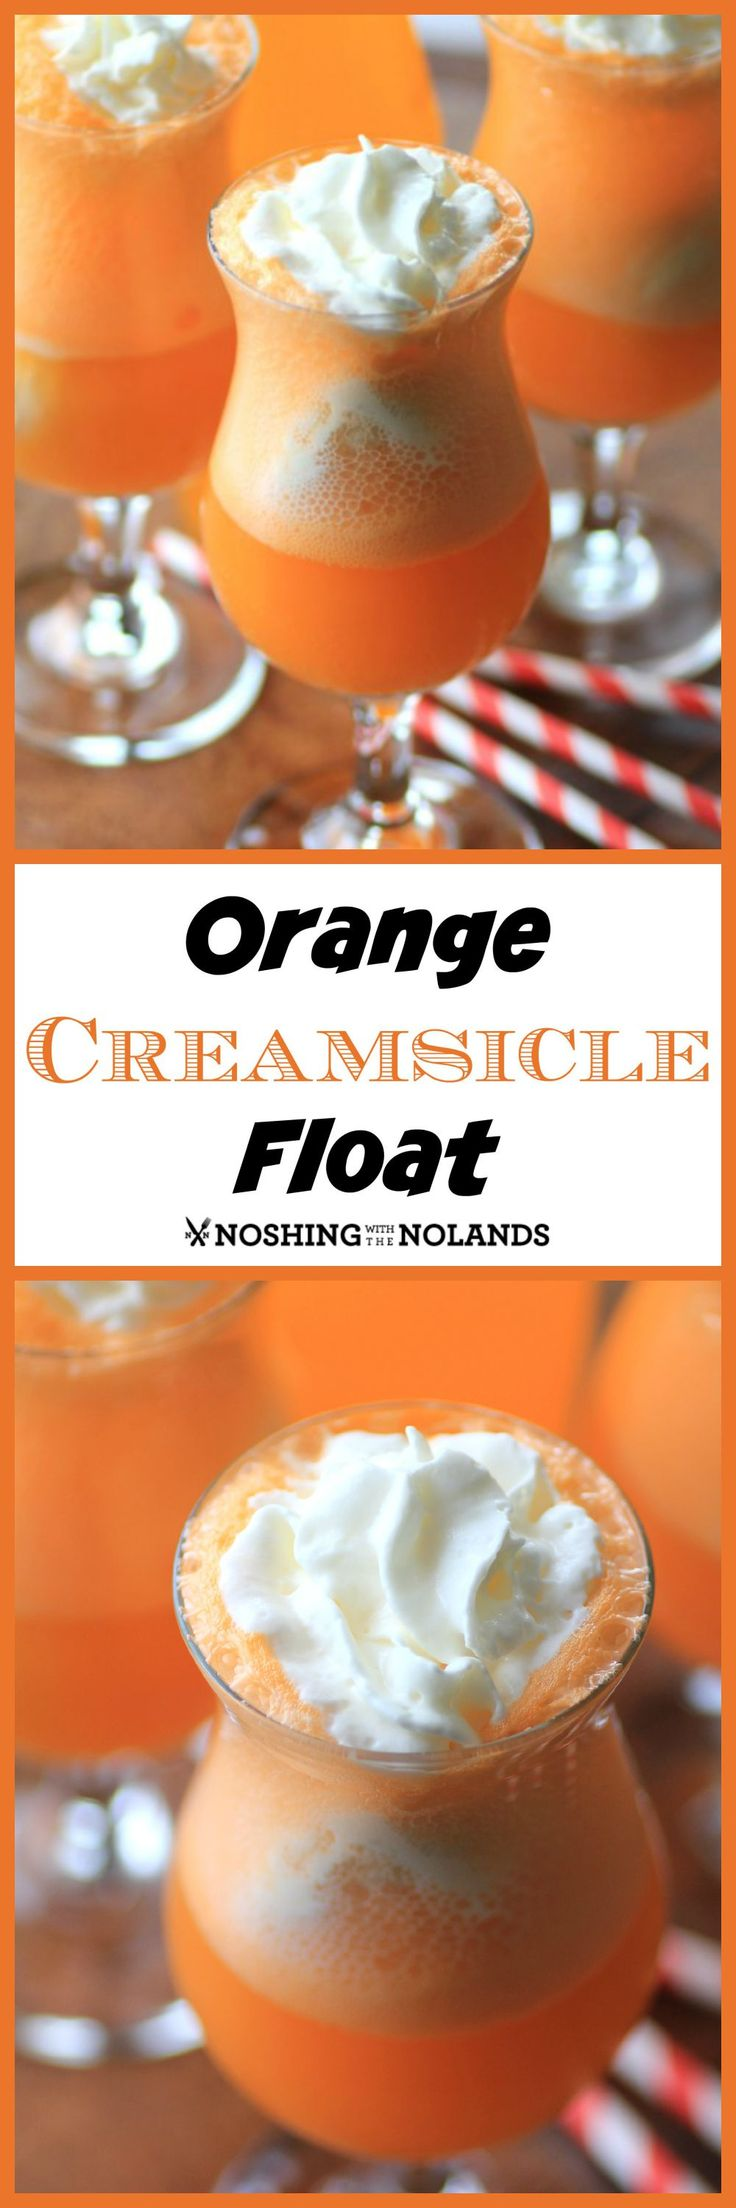 Beverage Recipes: Mouth Watering Mondays - Orange Creamsicle Float